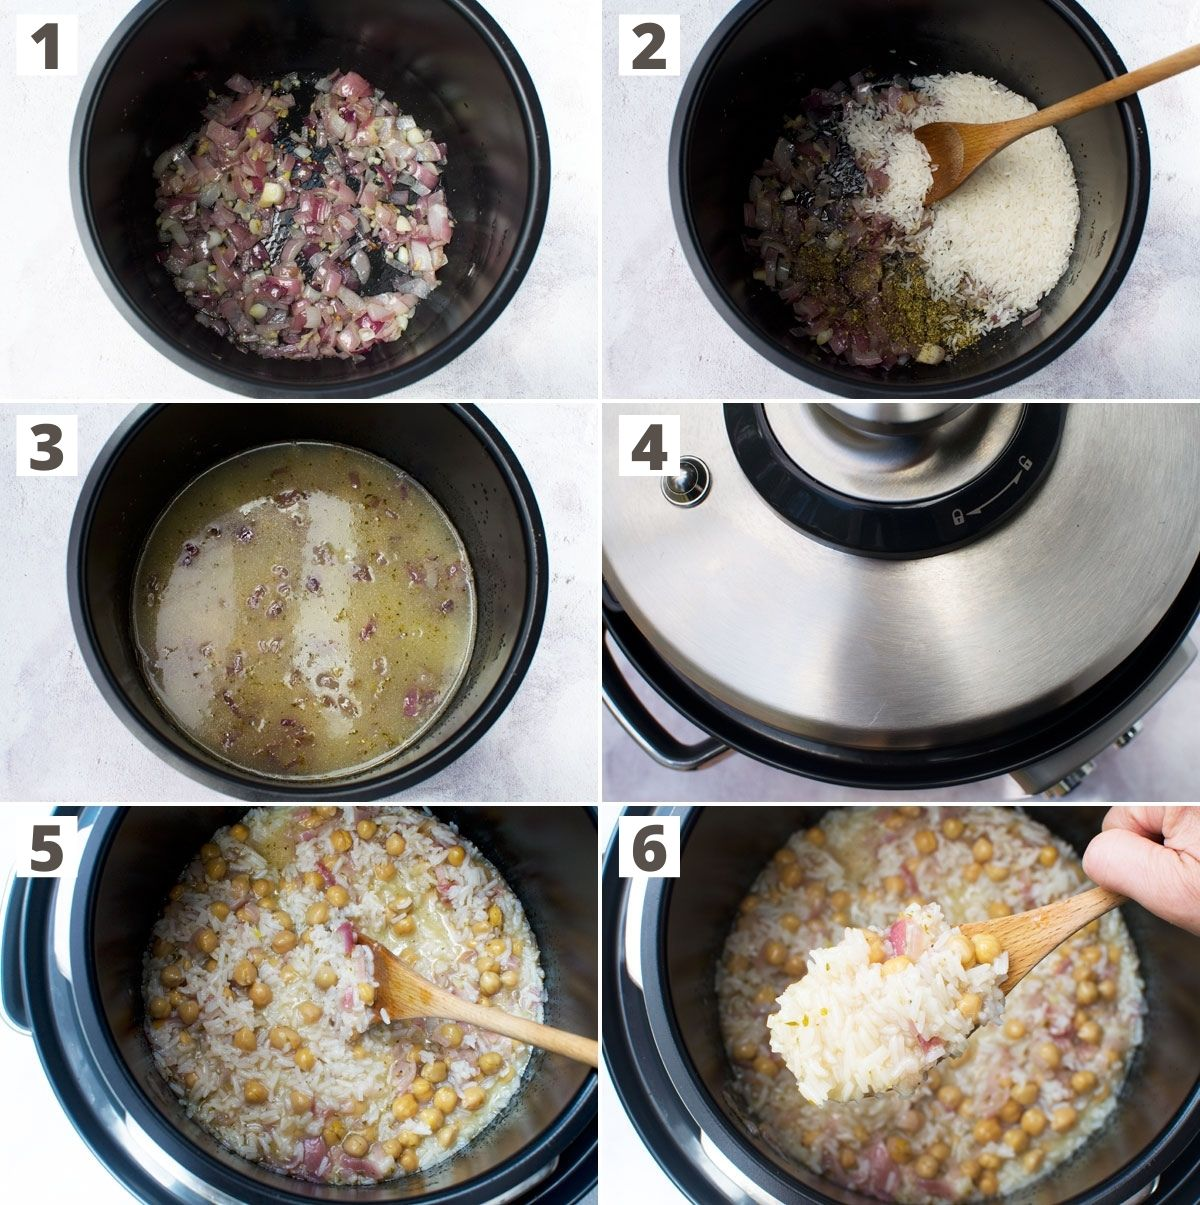 6 images showing how to make Mediterranean rice with chickpeas